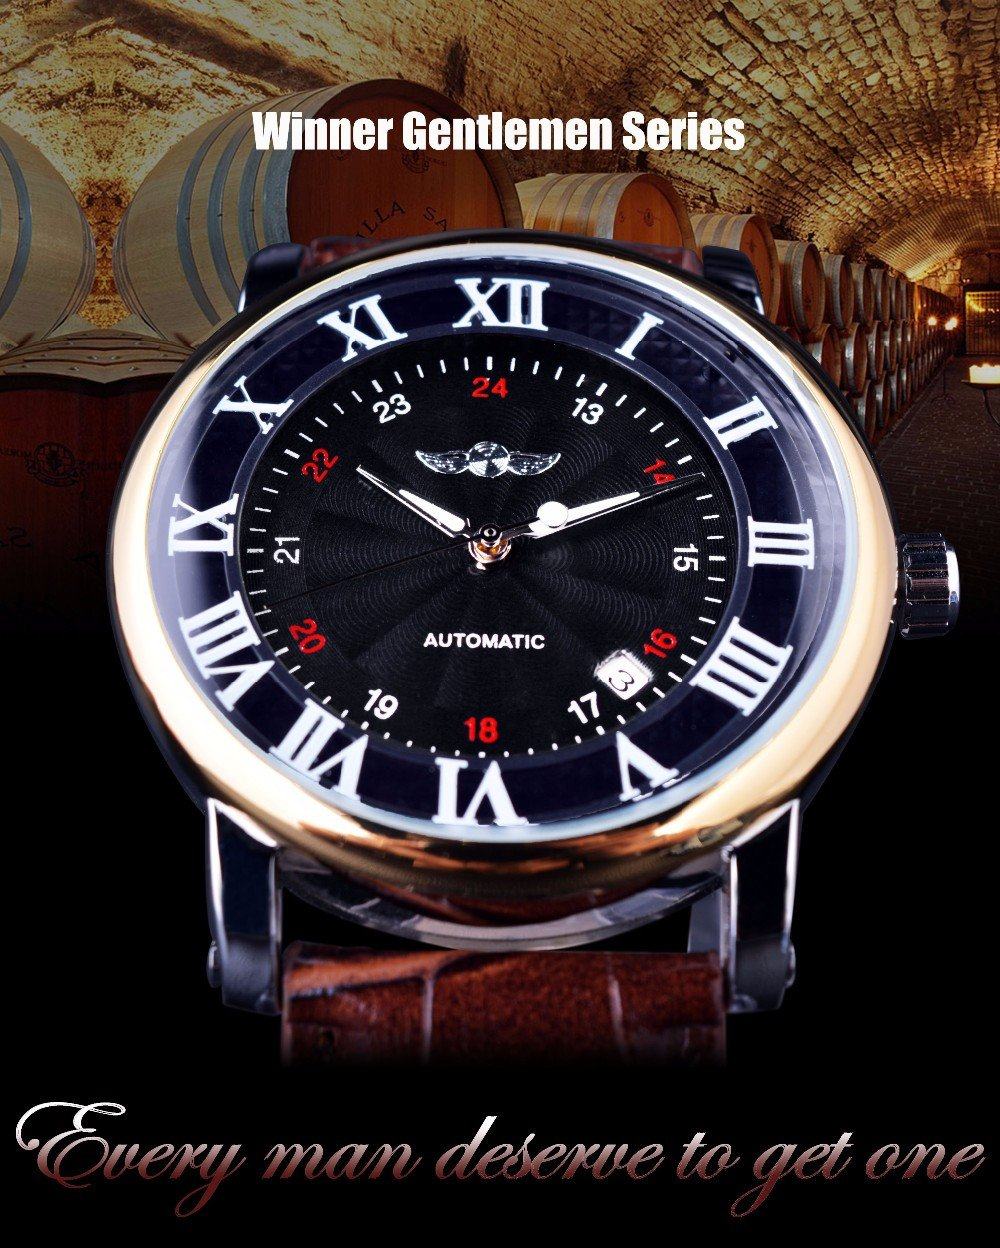 Gentlemen Series Golden Bezel Automatic Wrist Watch - World Wide Lux Brands